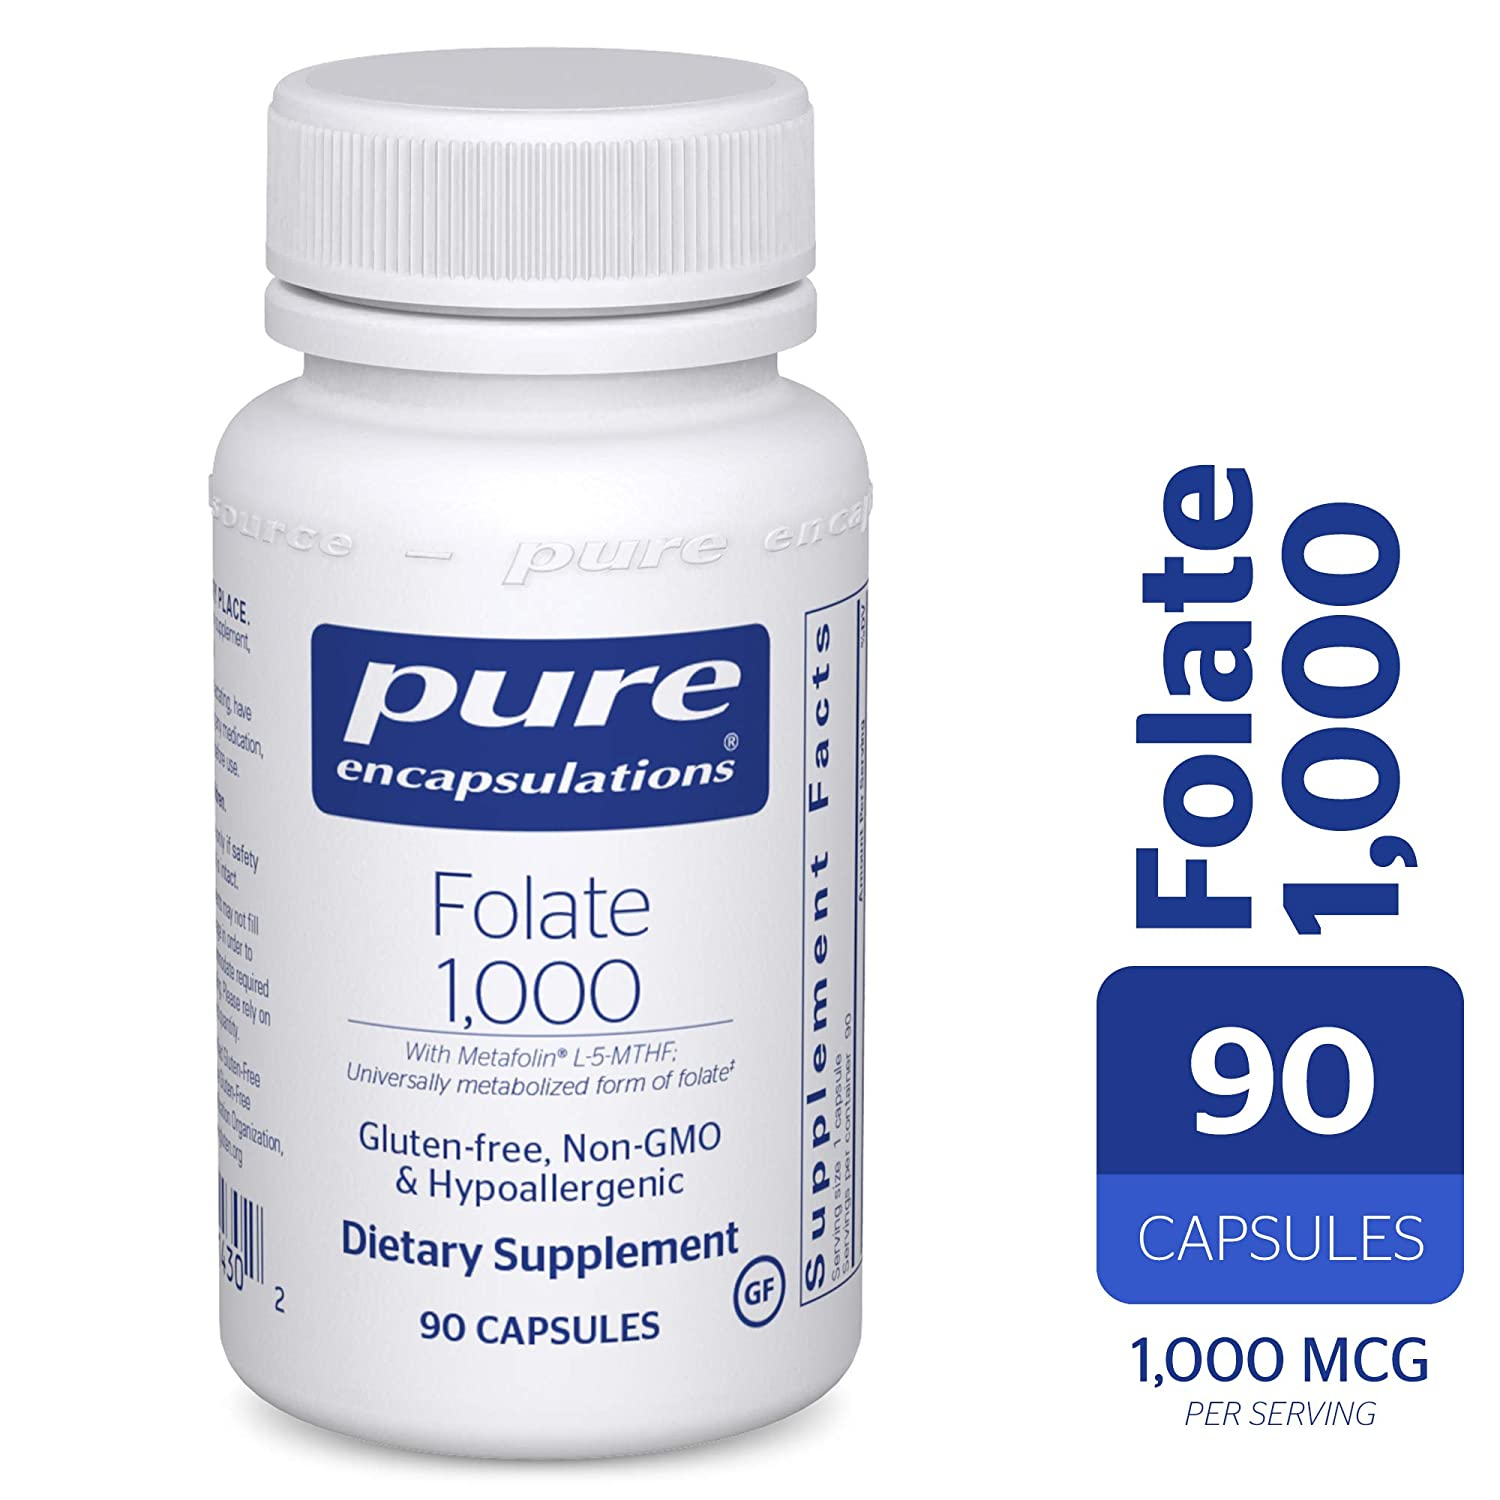 Pure Encapsulations – Folate 1000 – Hypoallergenic Supplement with Metafolin L-5-MTHF – 90 Capsules